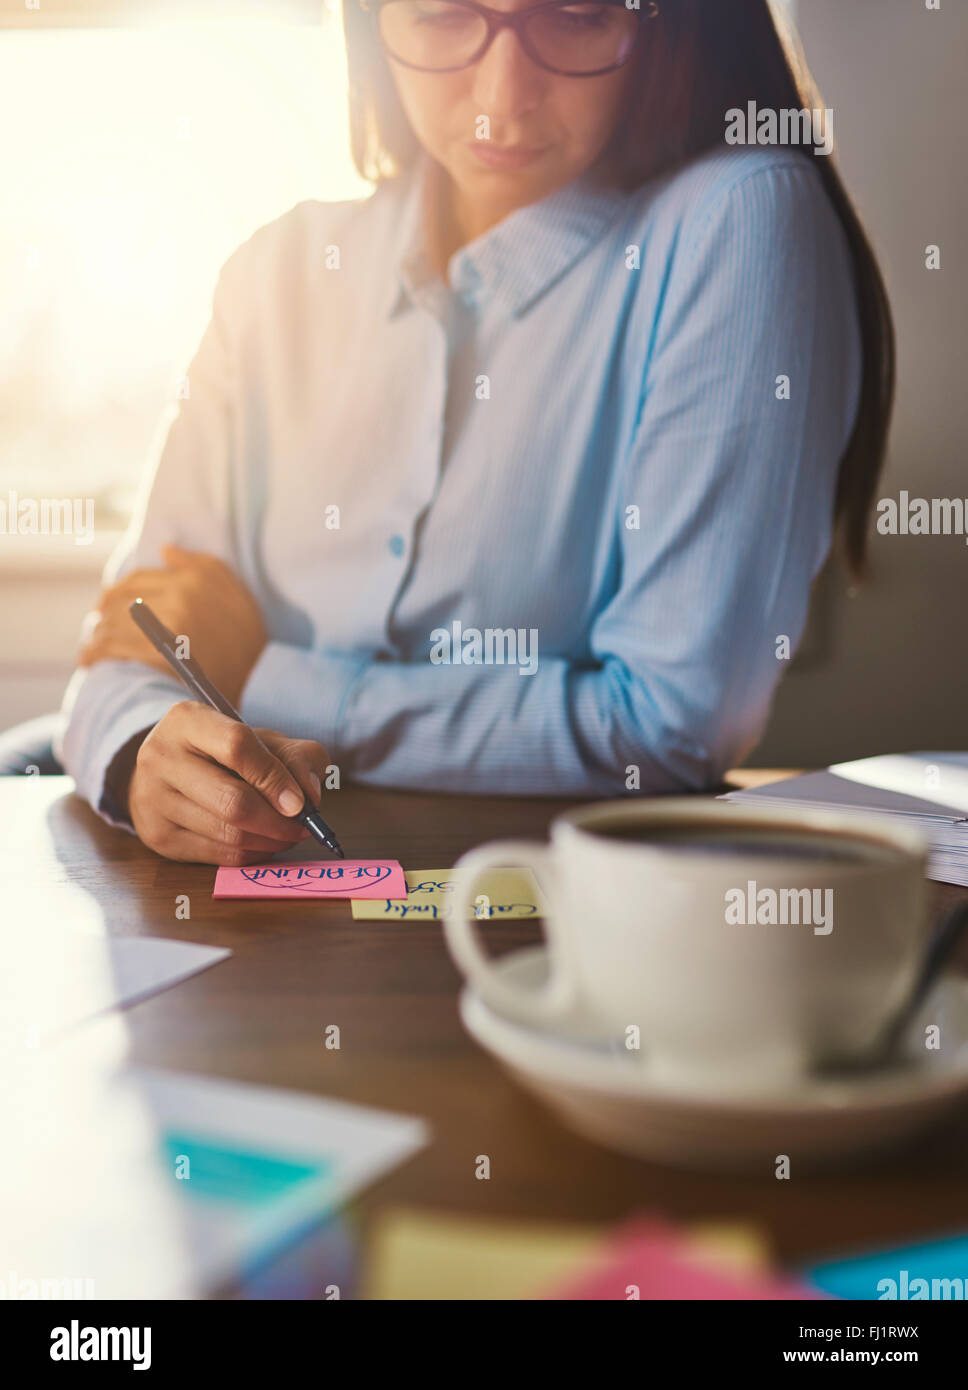 Female entrepreneur writing notes at desk, business woman look - Stock Image